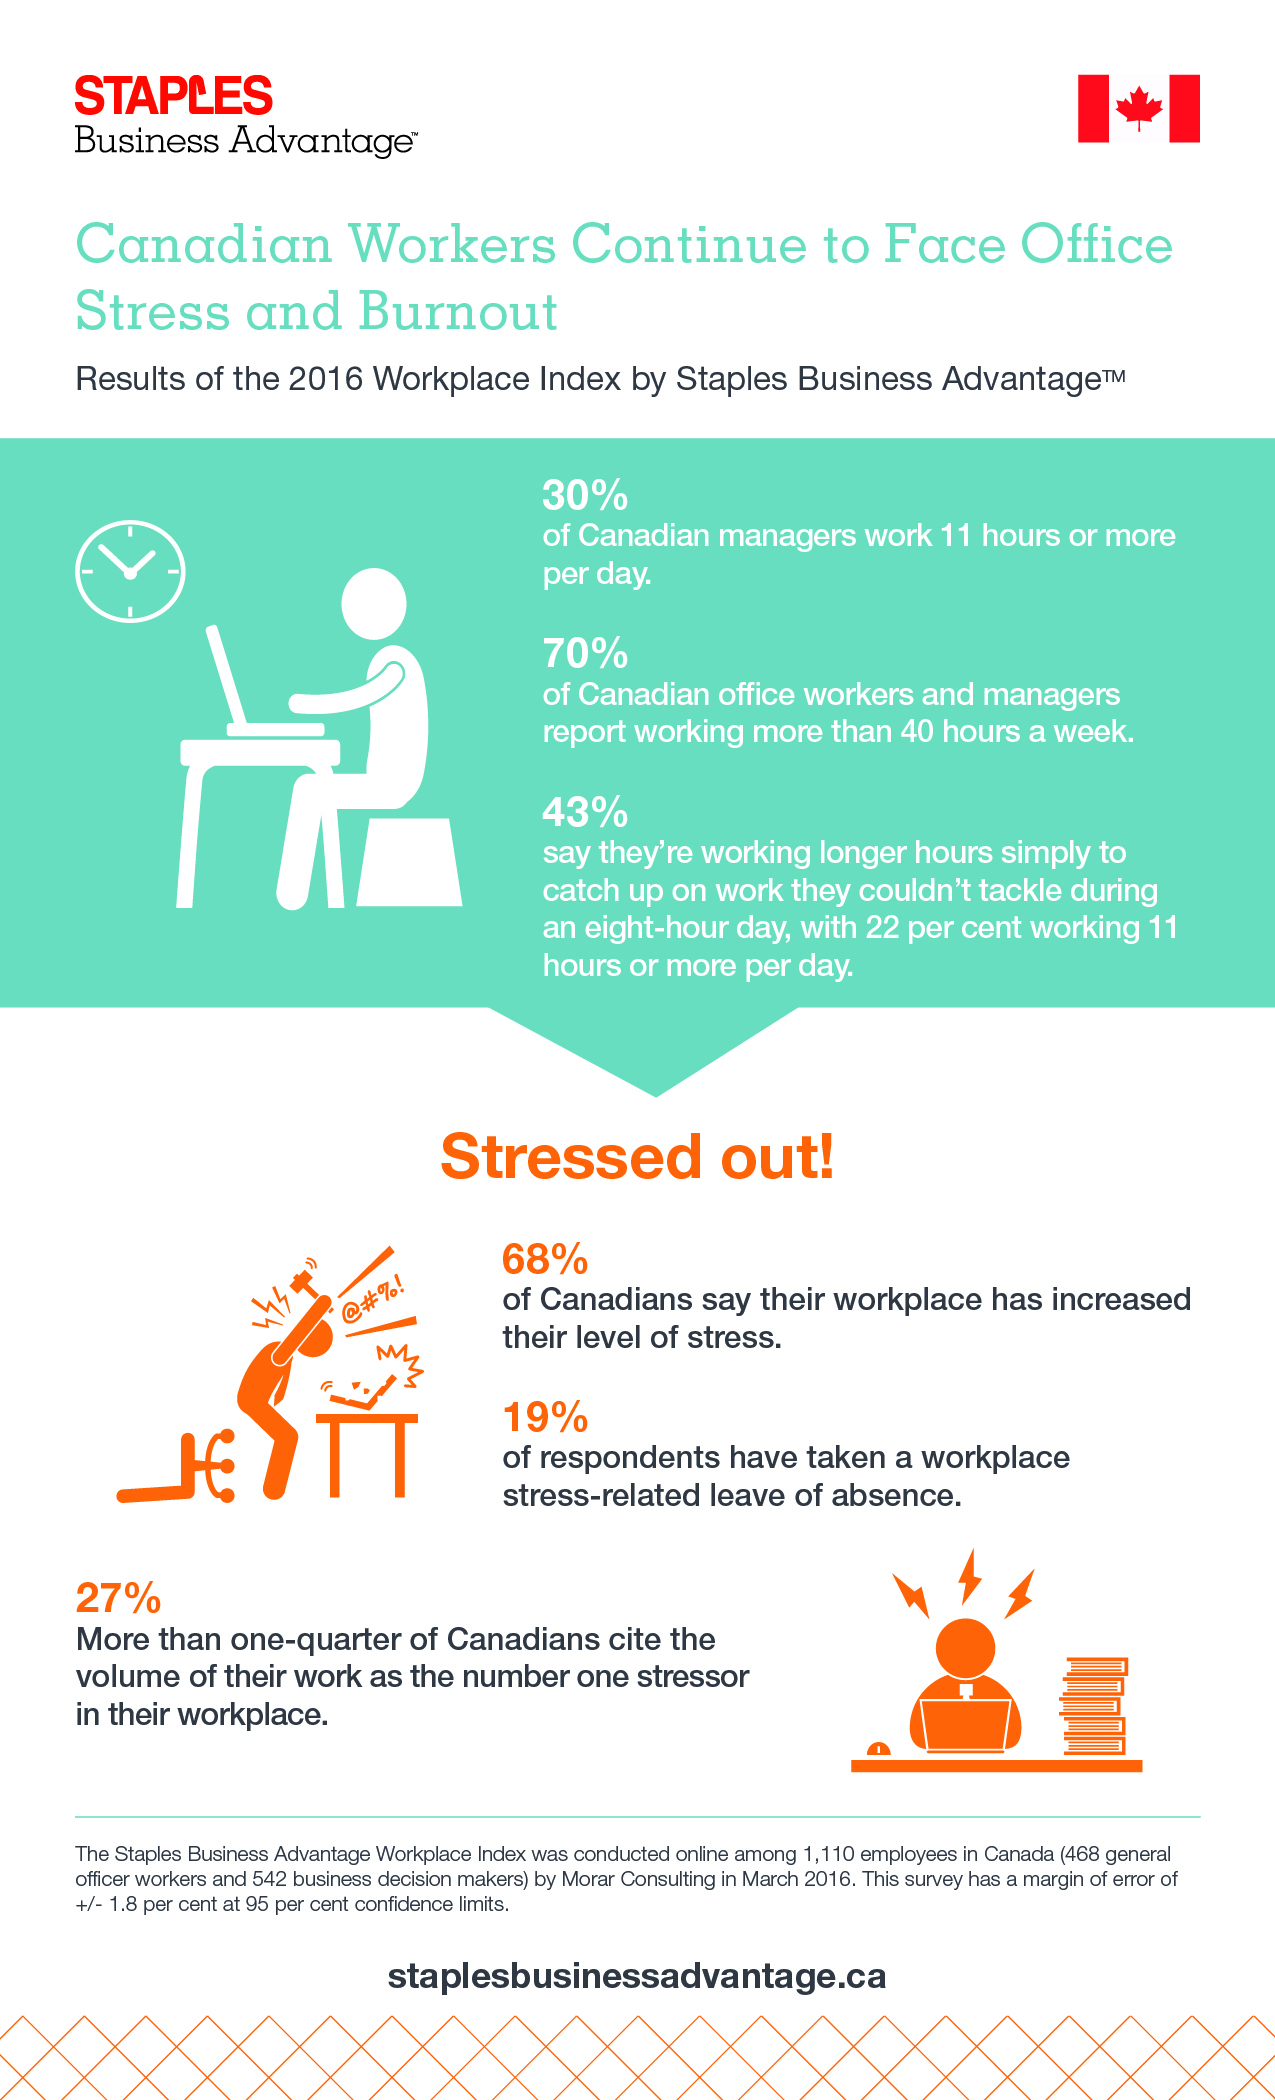 Canadian Workers Face Office Reality Most Productive Place To Work